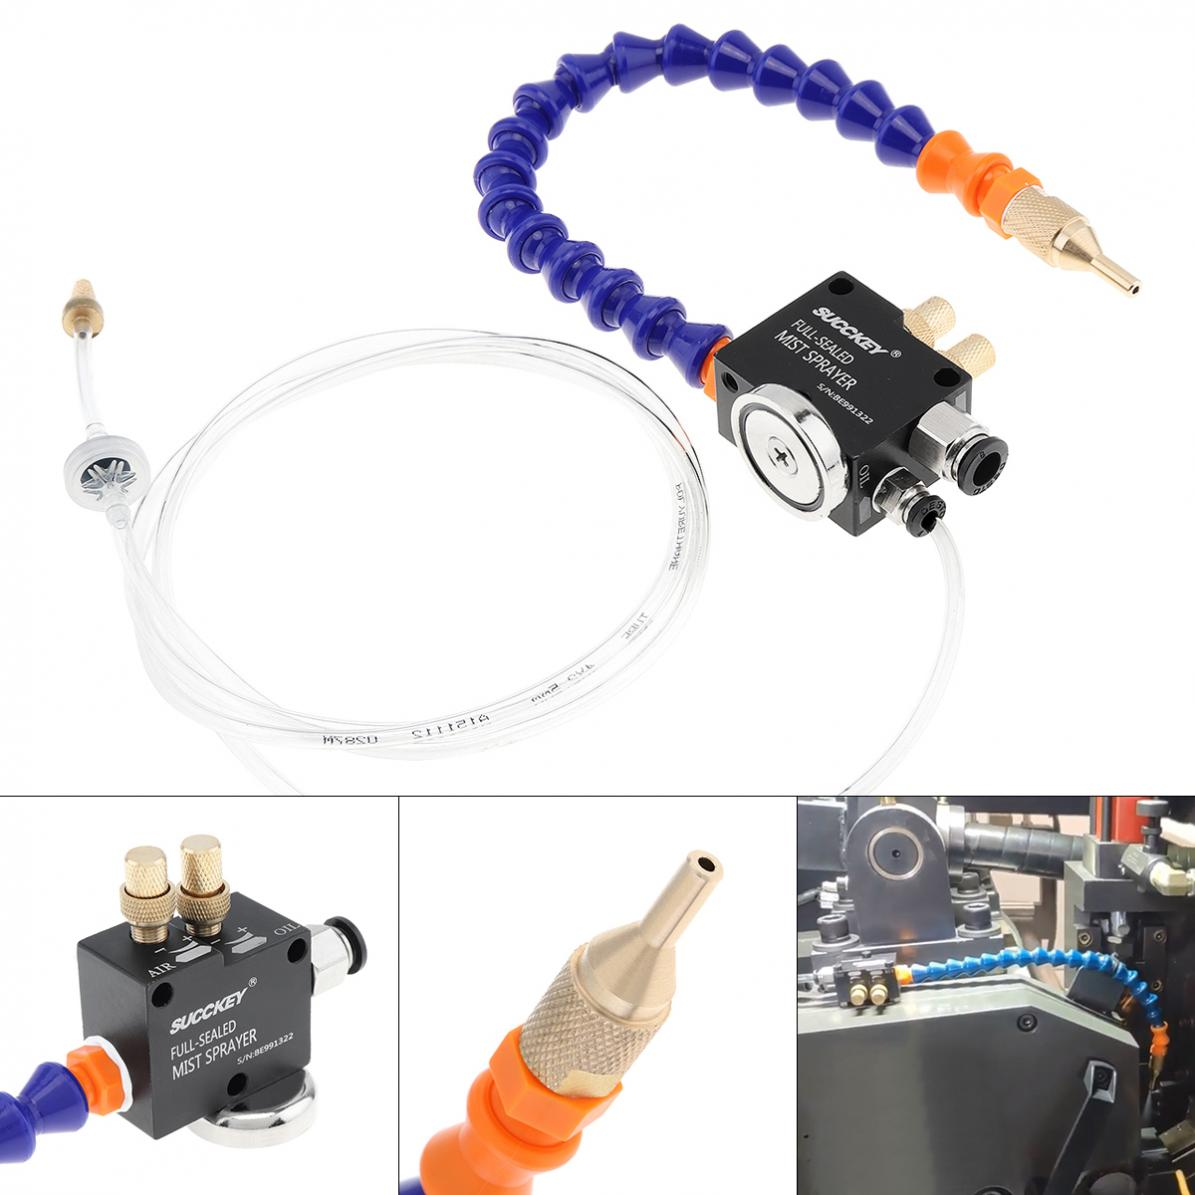 30cm Mist Coolant Lubrication Spray System With Sealed Plastic Tube For Metal Cutting Engraving Cooling Machine / CNC Lathe